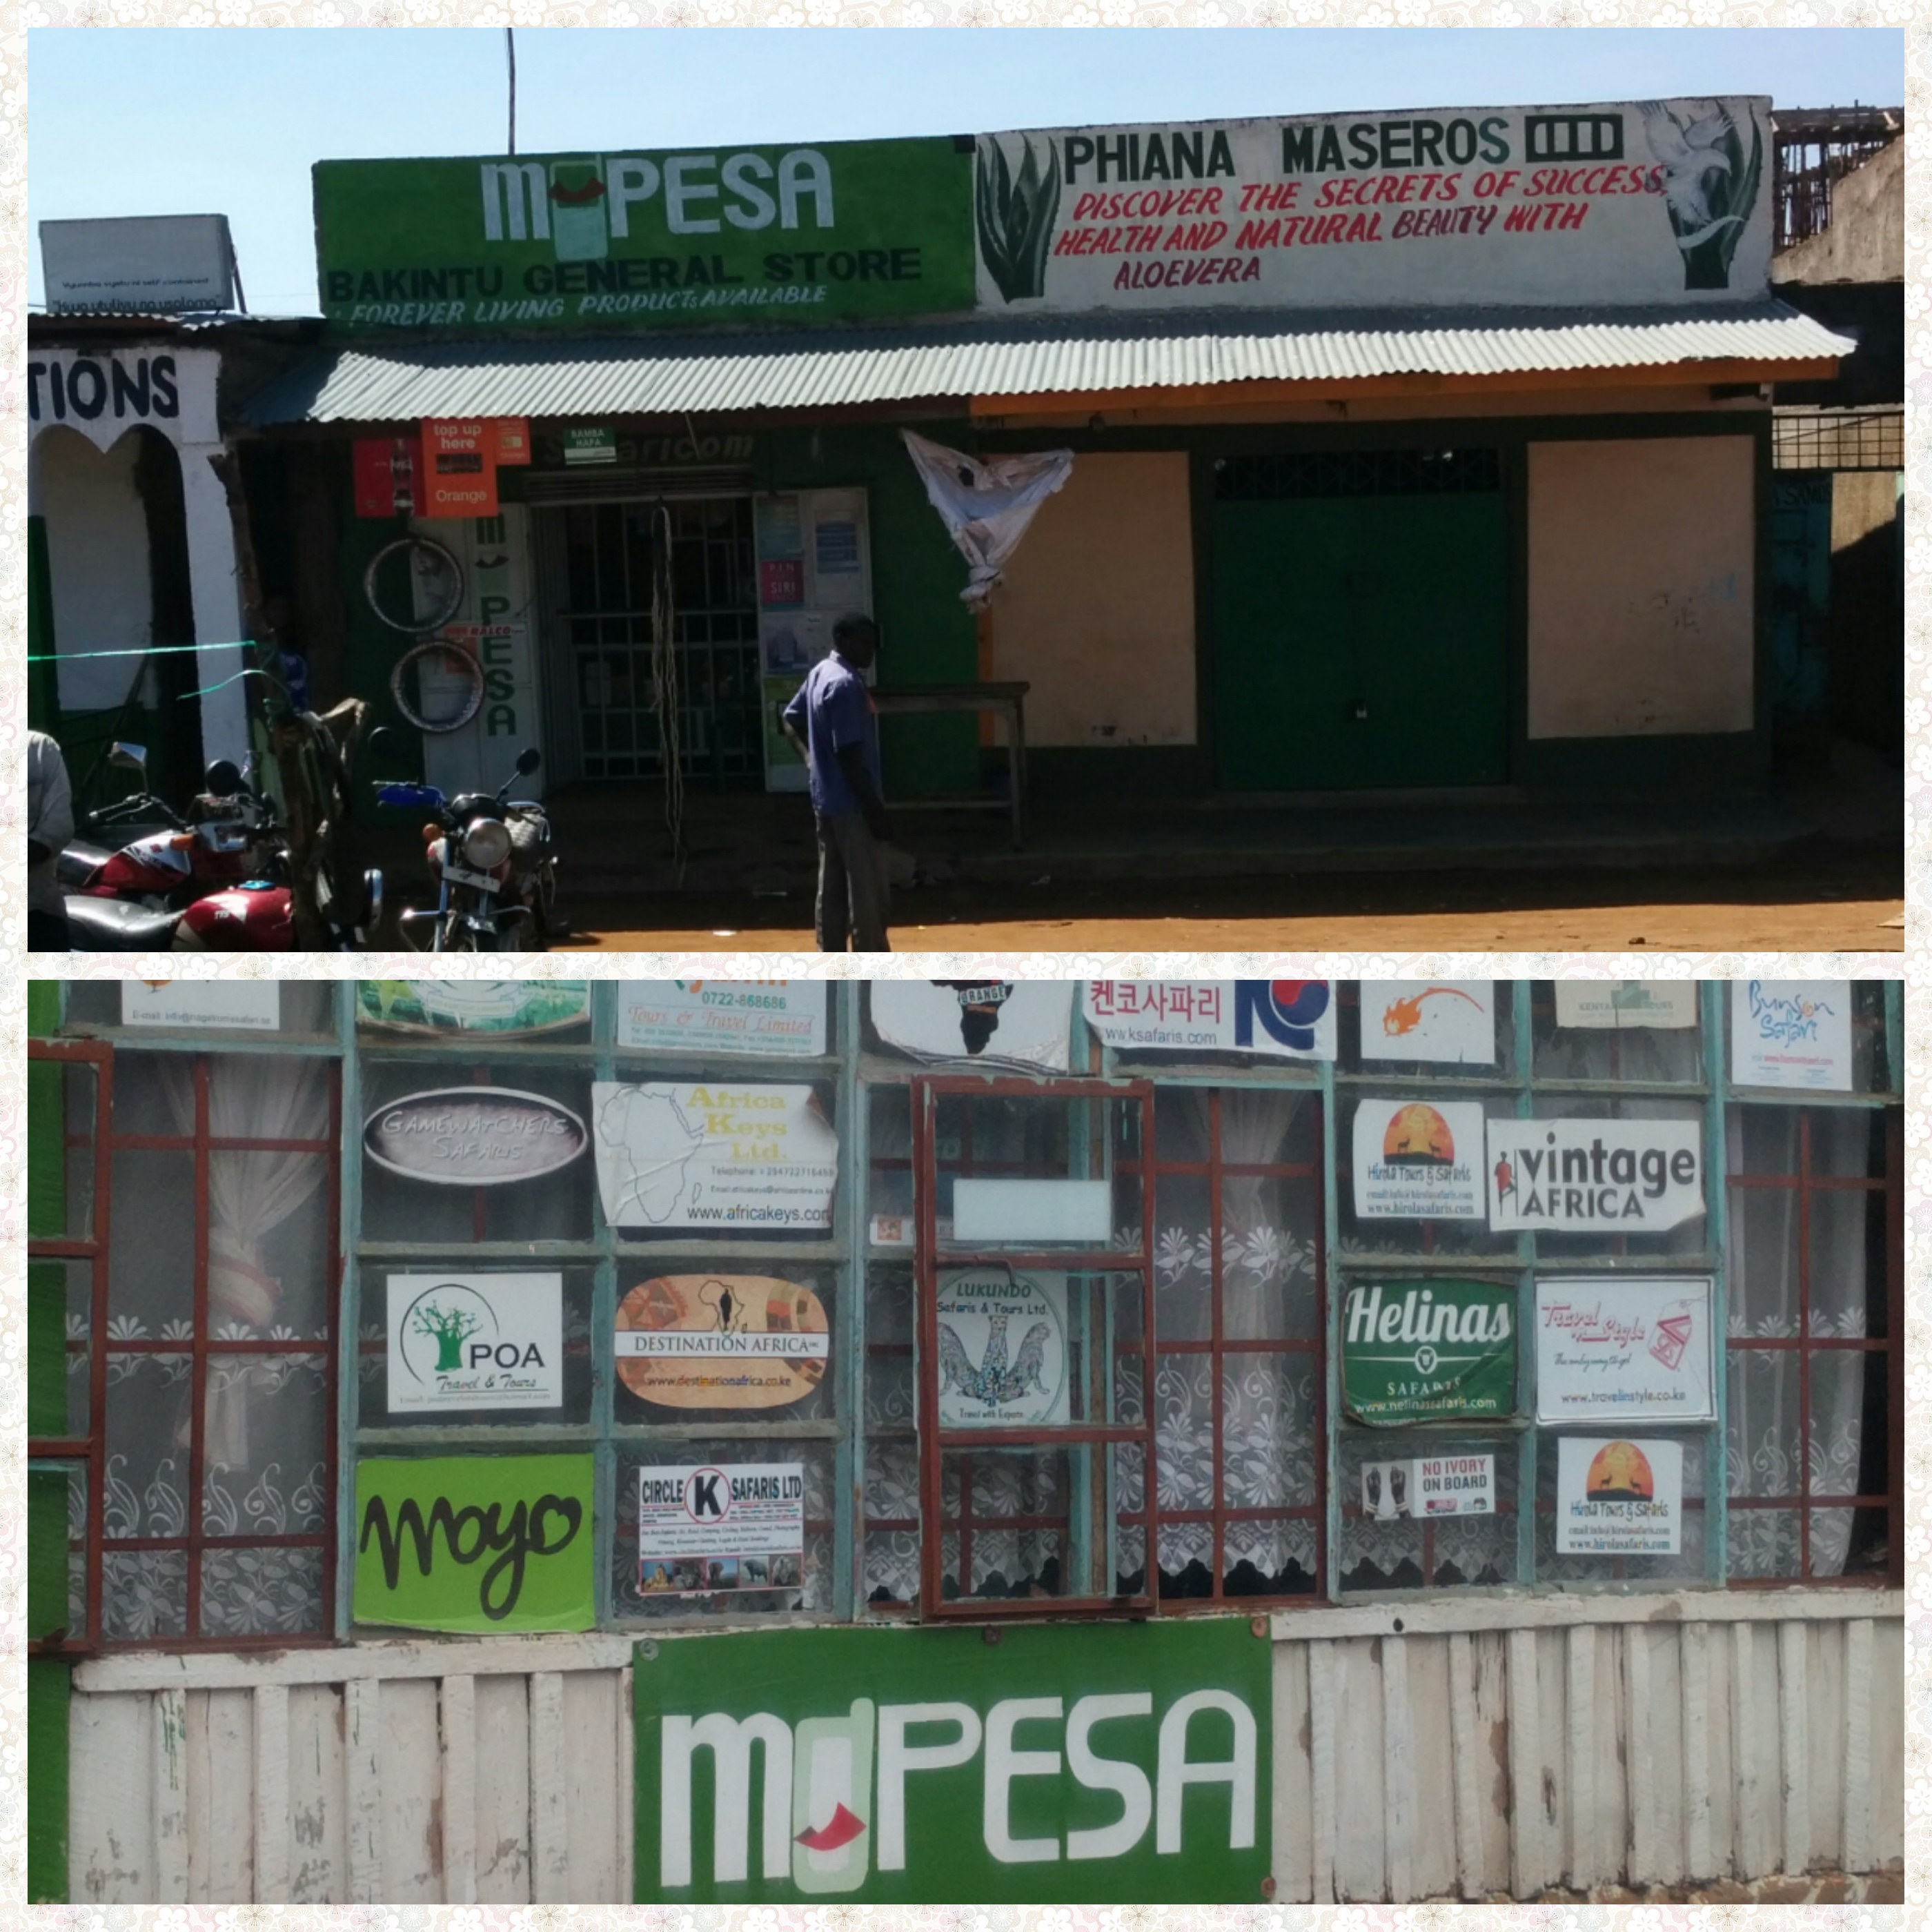 M-Pesa shops across East Africa